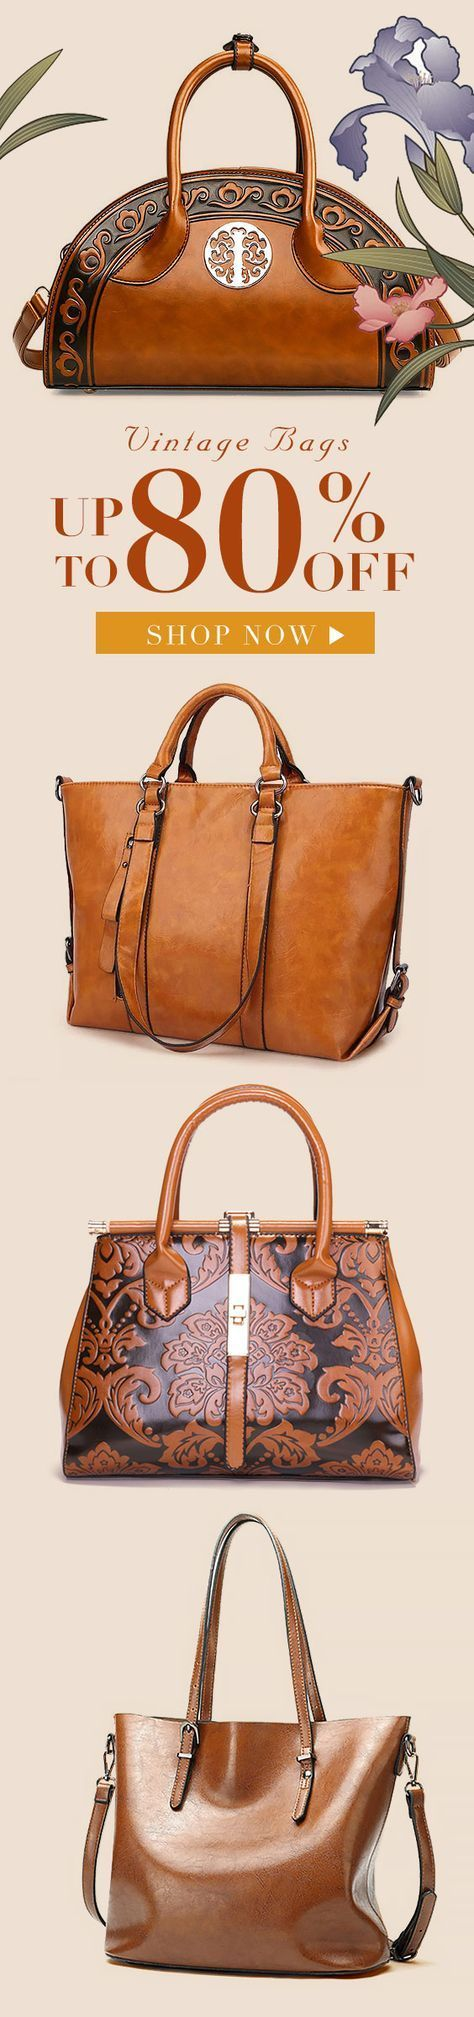 I love those fashionable and beautiful bags from banggood.com. Find the most sui…